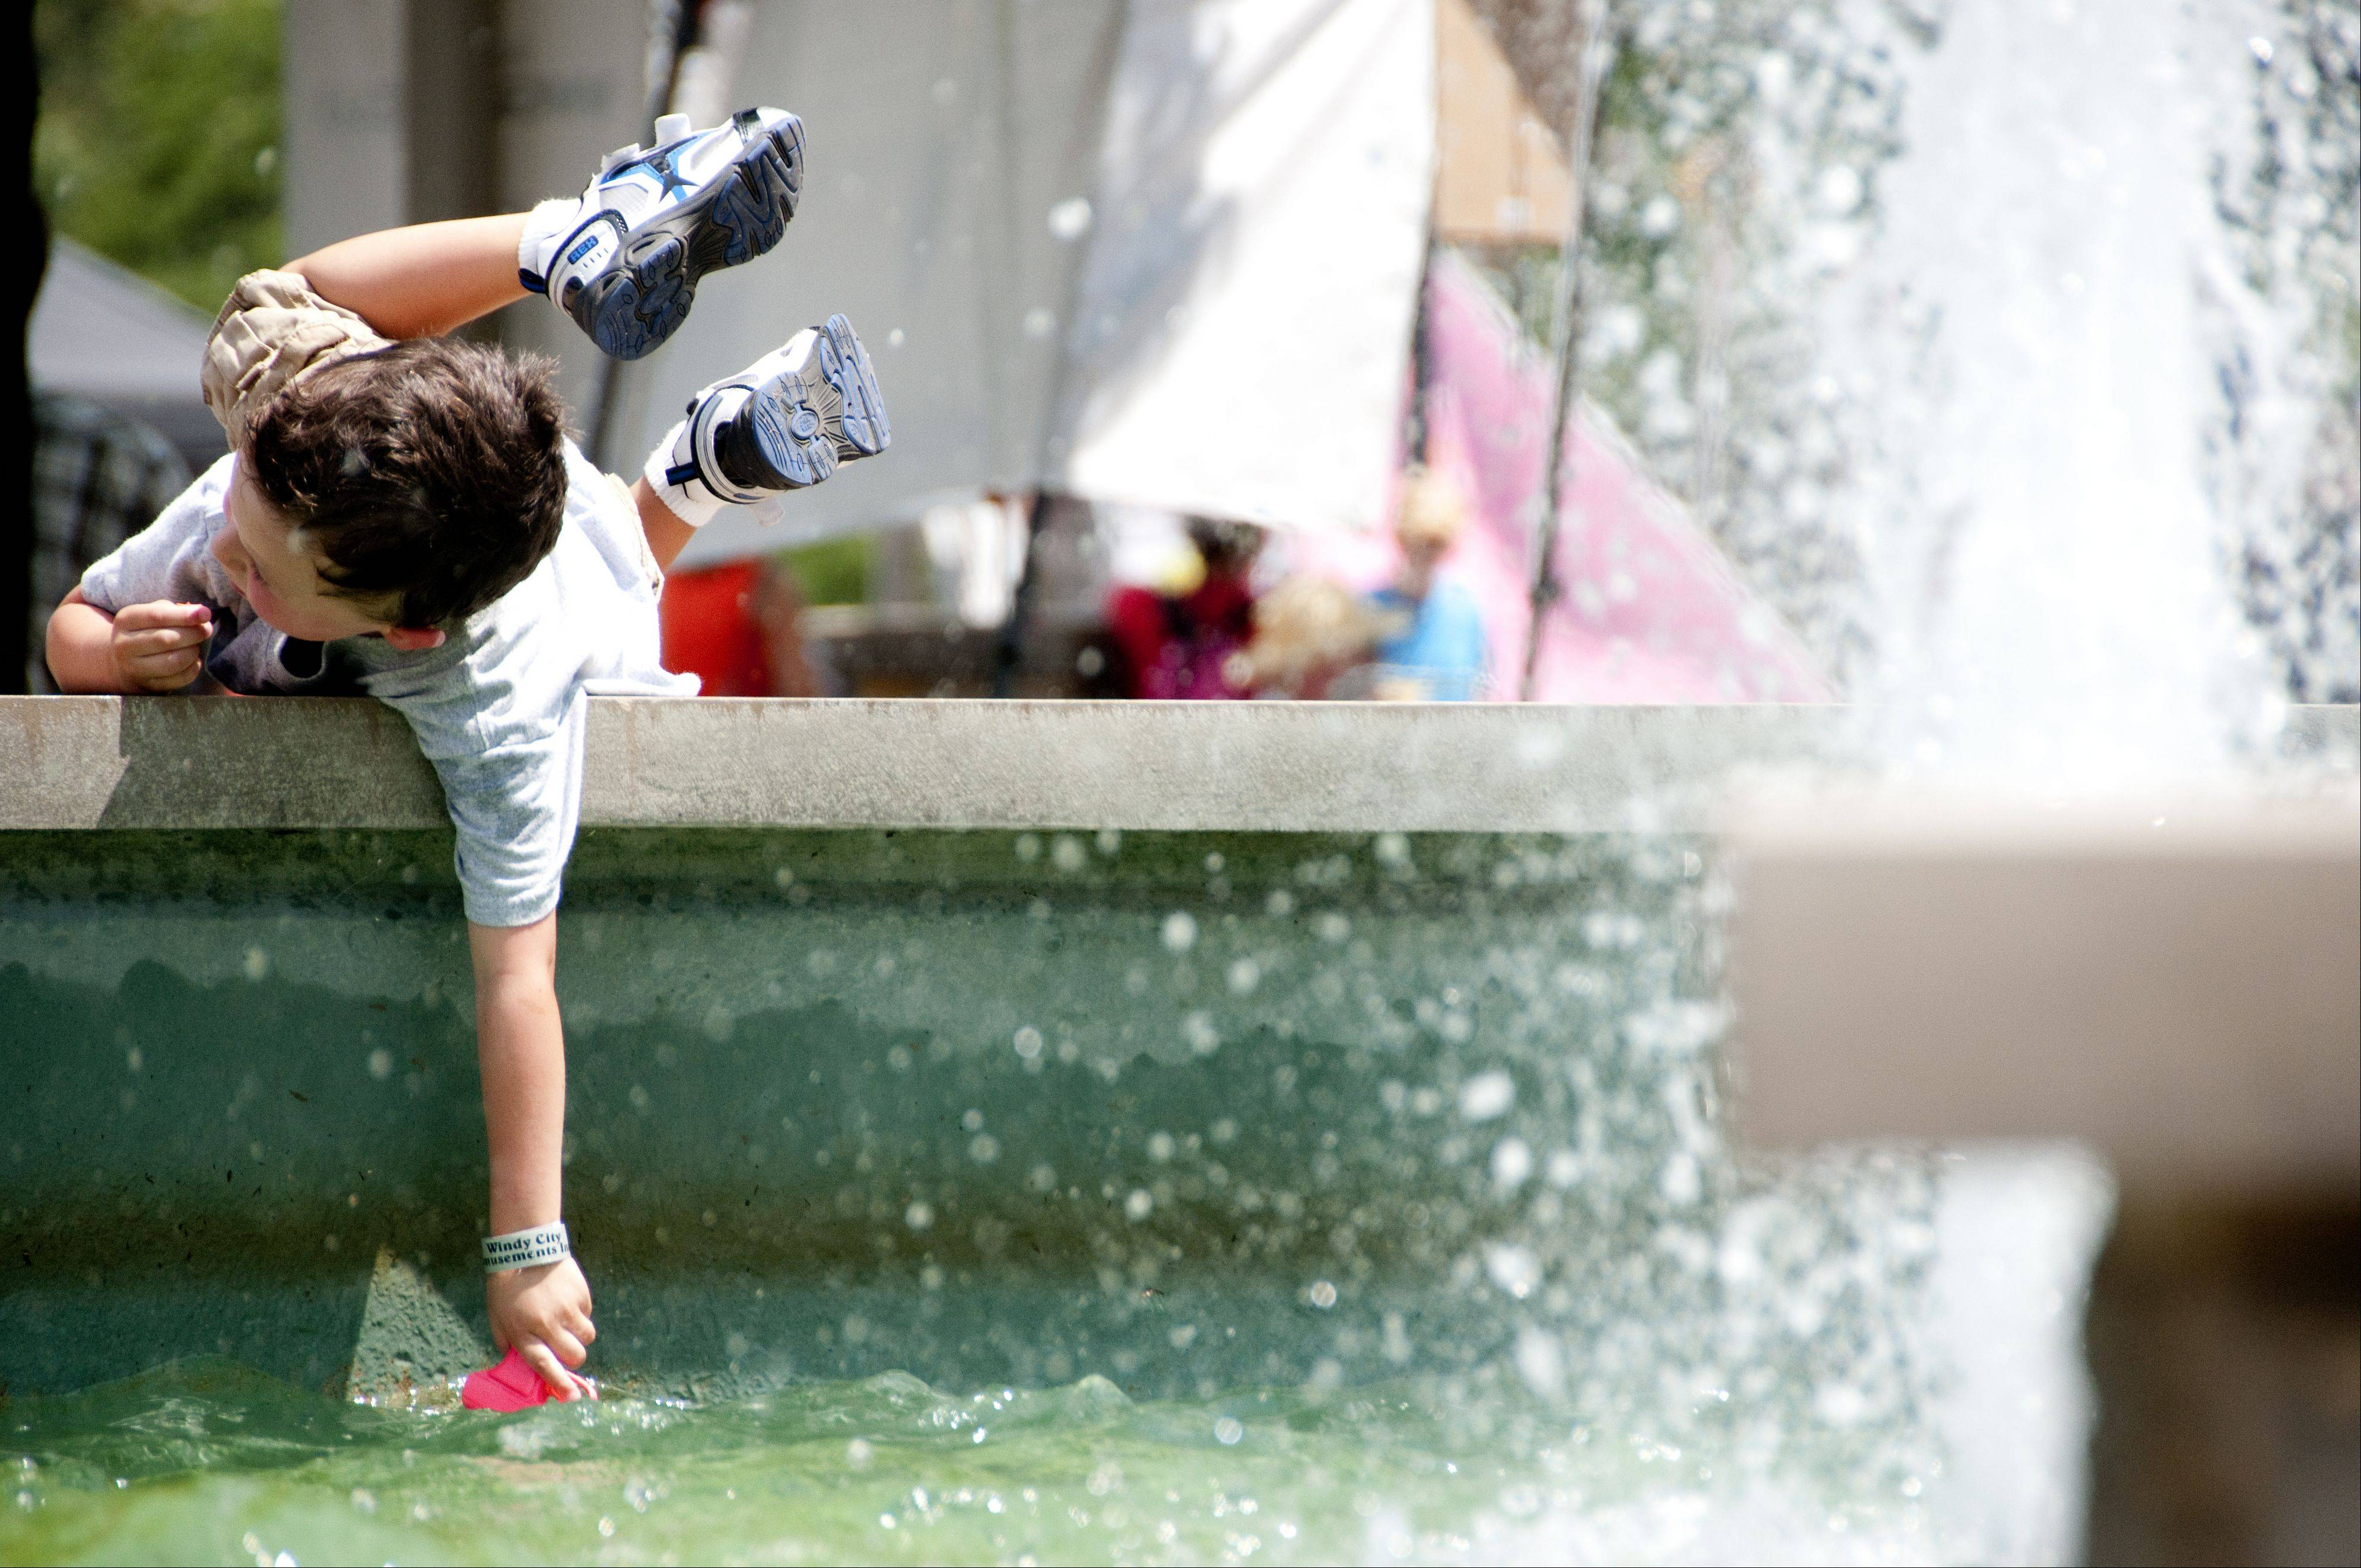 Andrew Dellabella, 4, of Geneva, fills a water pistol in a fountain Sunday at the Batavia Riverwalk.